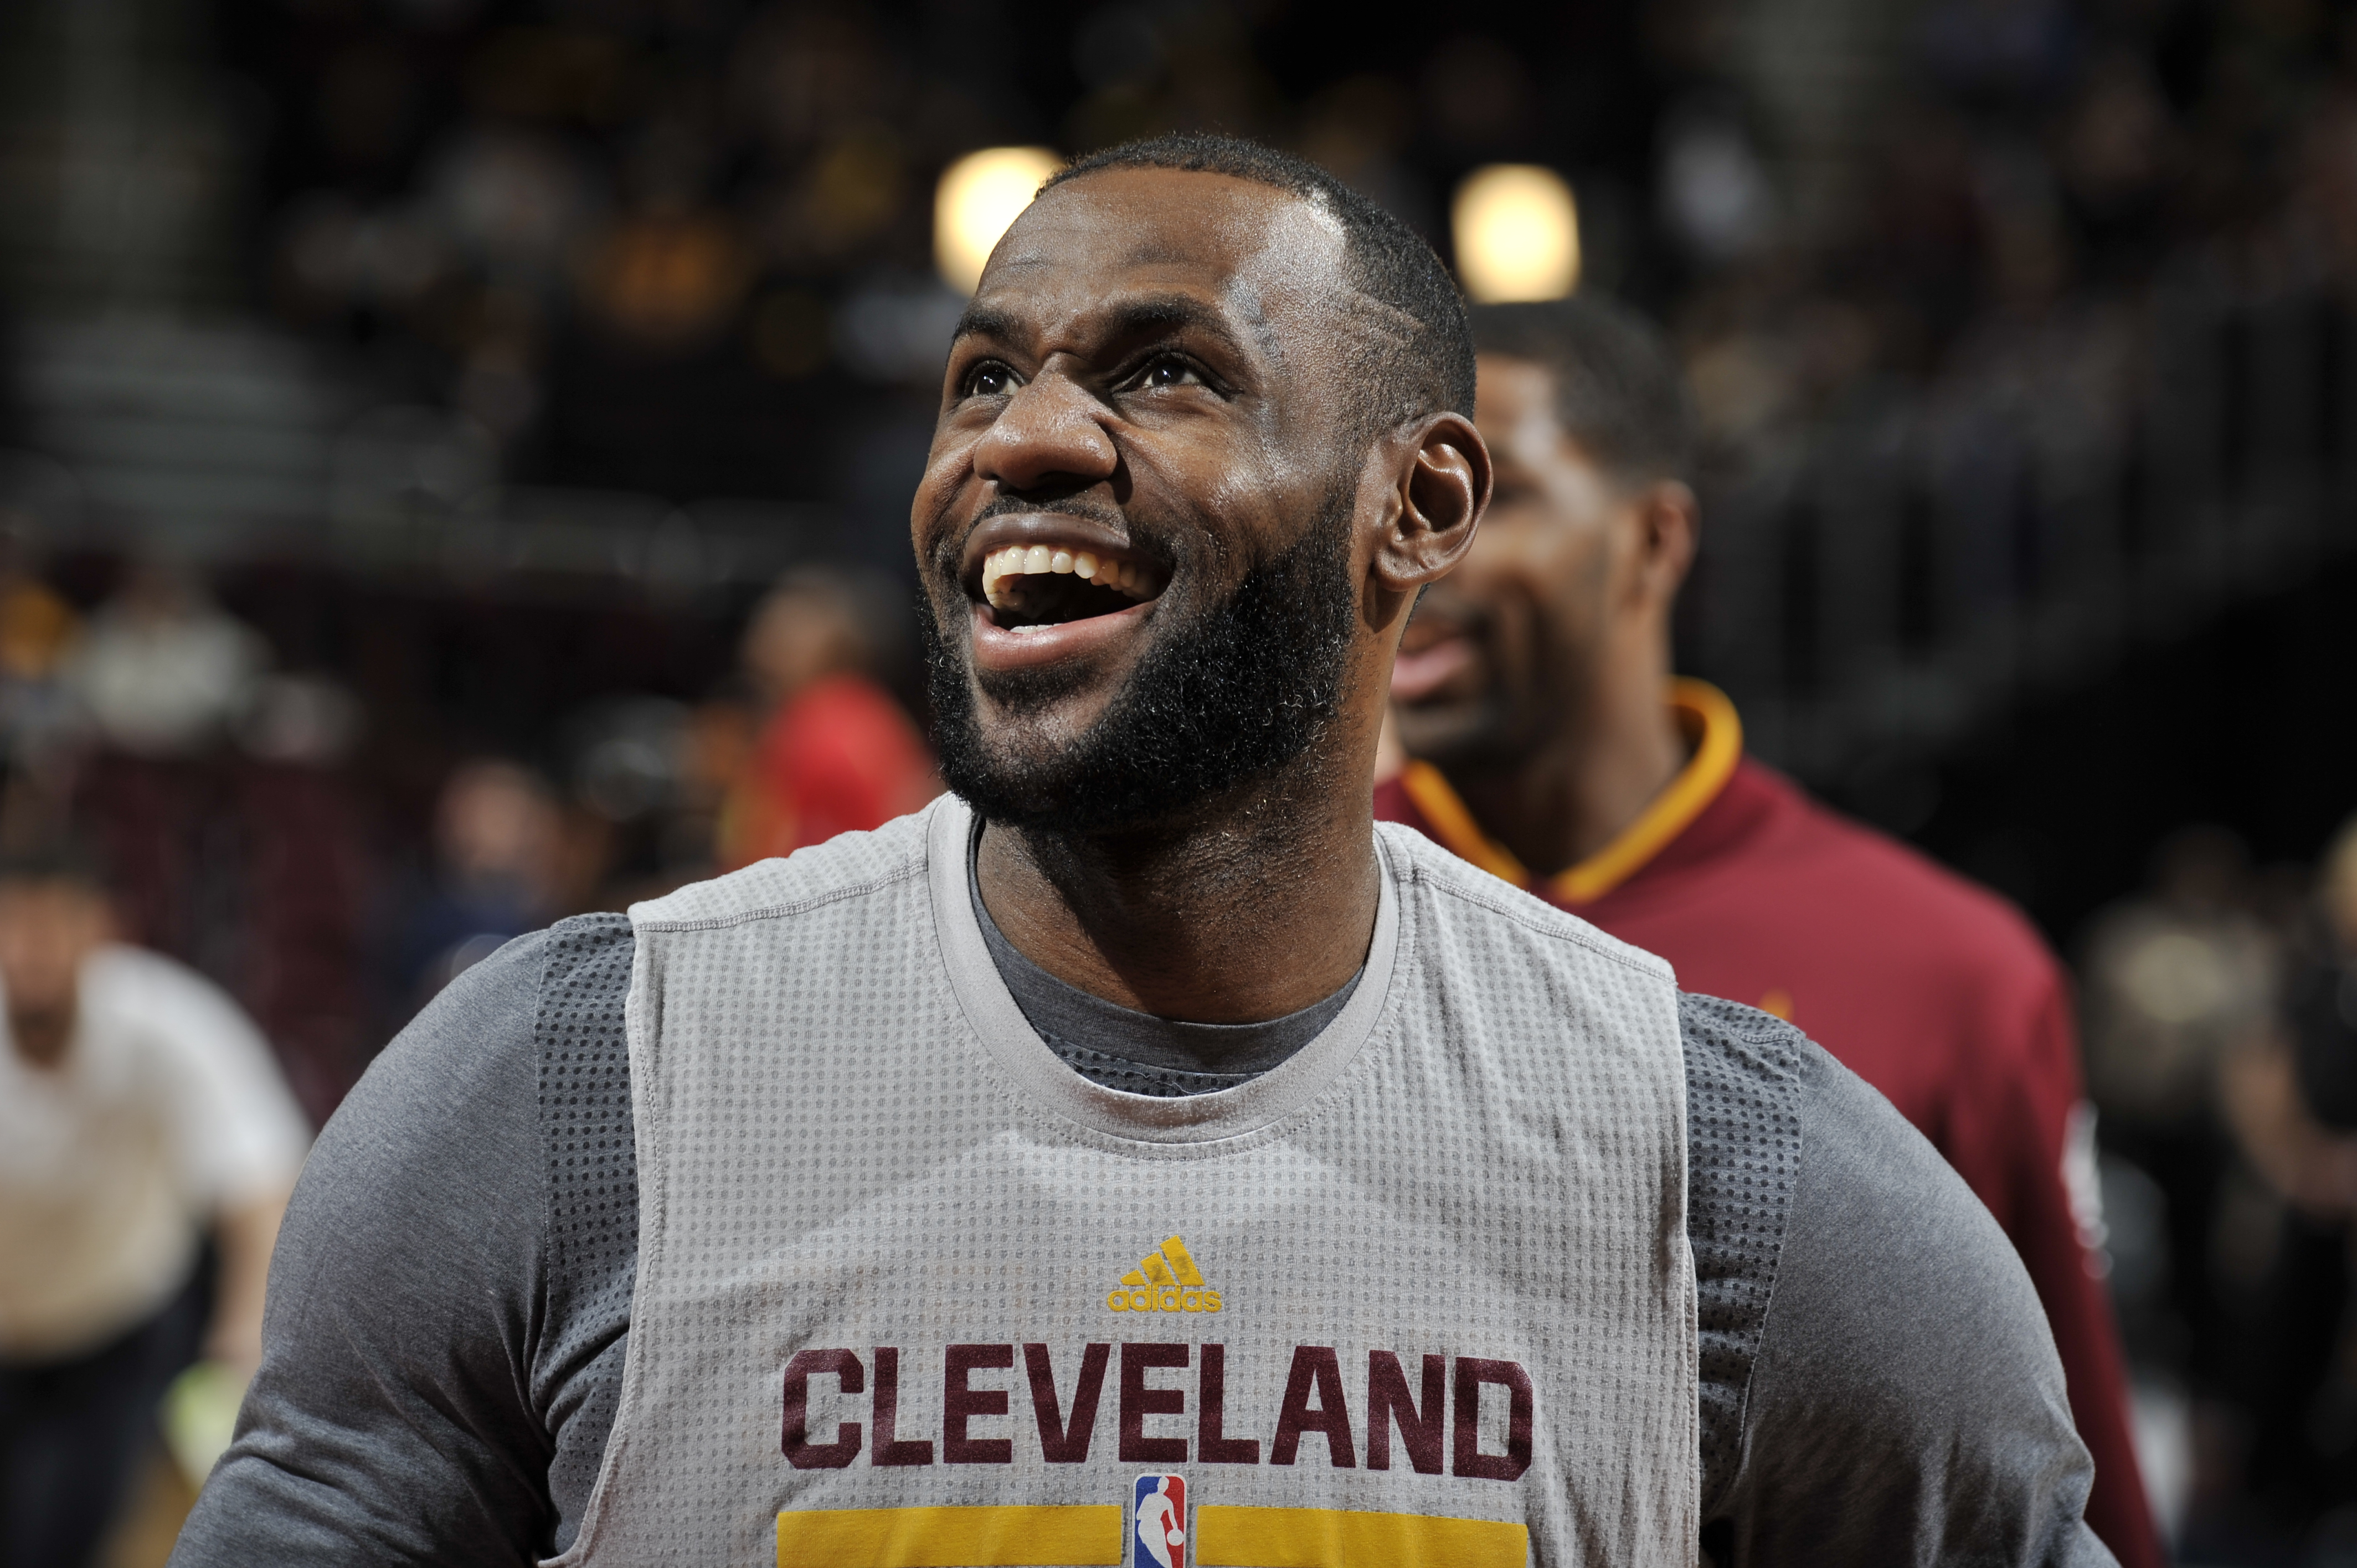 CLEVELAND, OH - APRIL 11:  LeBron James #23 of the Cleveland Cavaliers warms up before the game against the Atlanta Hawks on April 11, 2016 at Quicken Loans Arena in Cleveland, Ohio. (Photo by David Liam Kyle/NBAE via Getty Images)